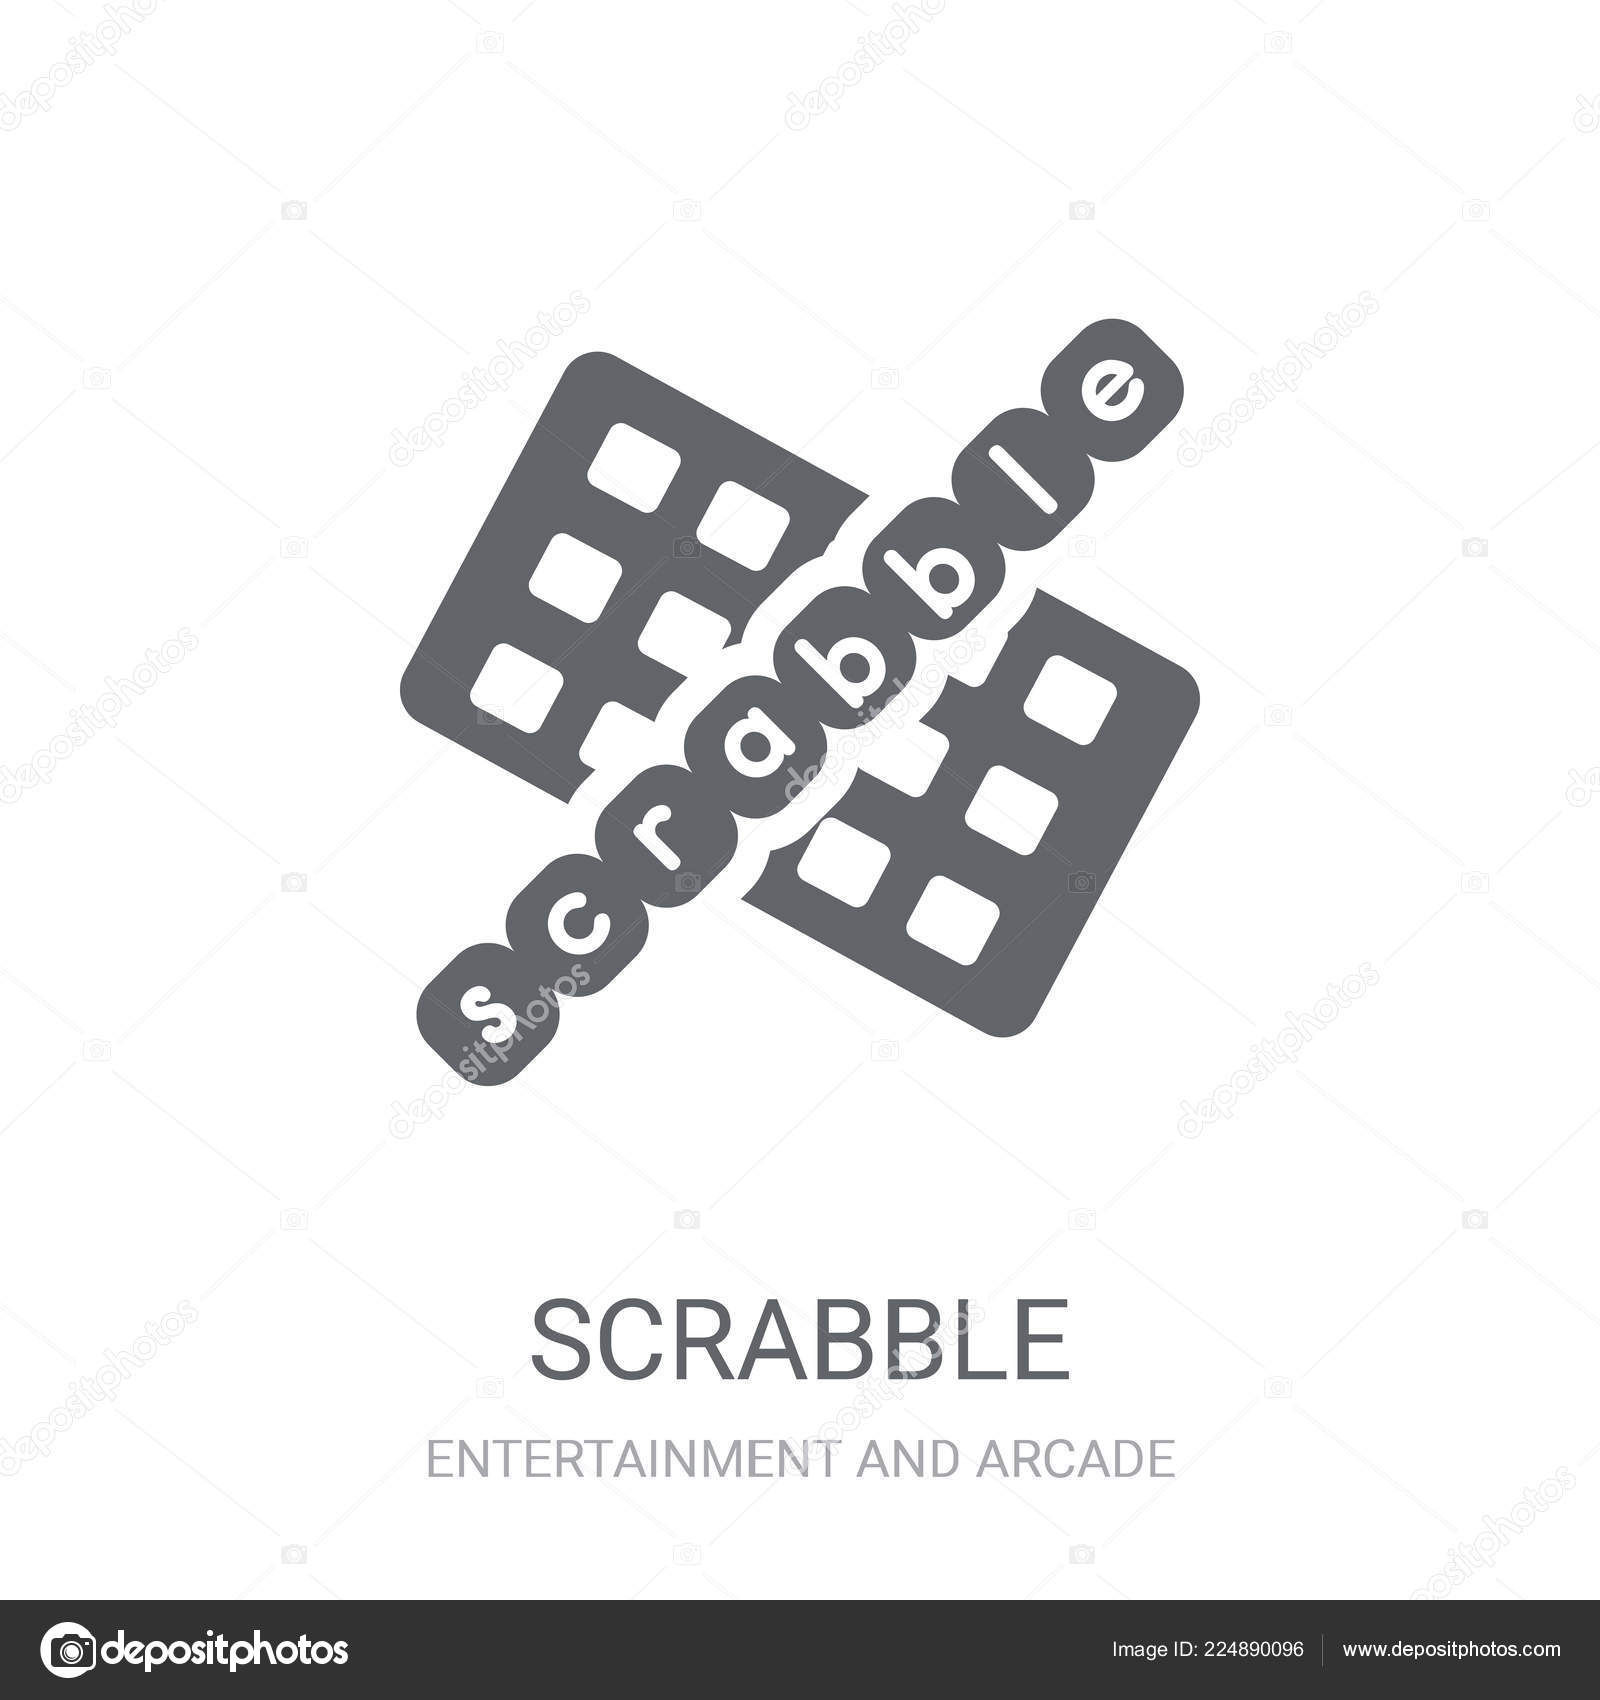 Scrabble Icon Trendy Scrabble Logo Concept White Background